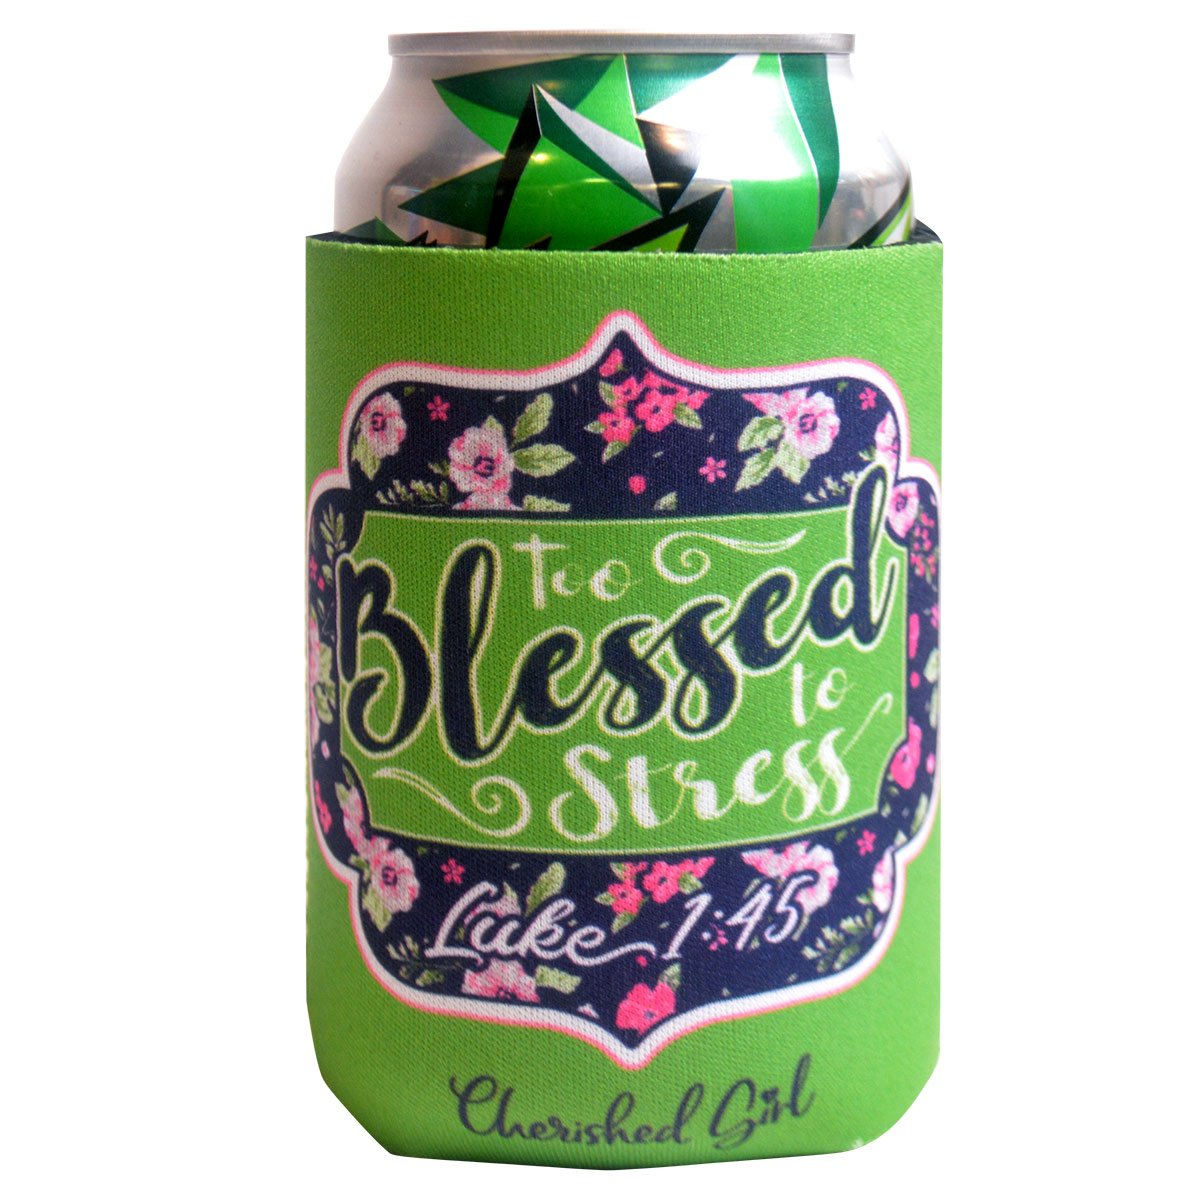 Cherished Girl Christian Can Cooler Too Blessed